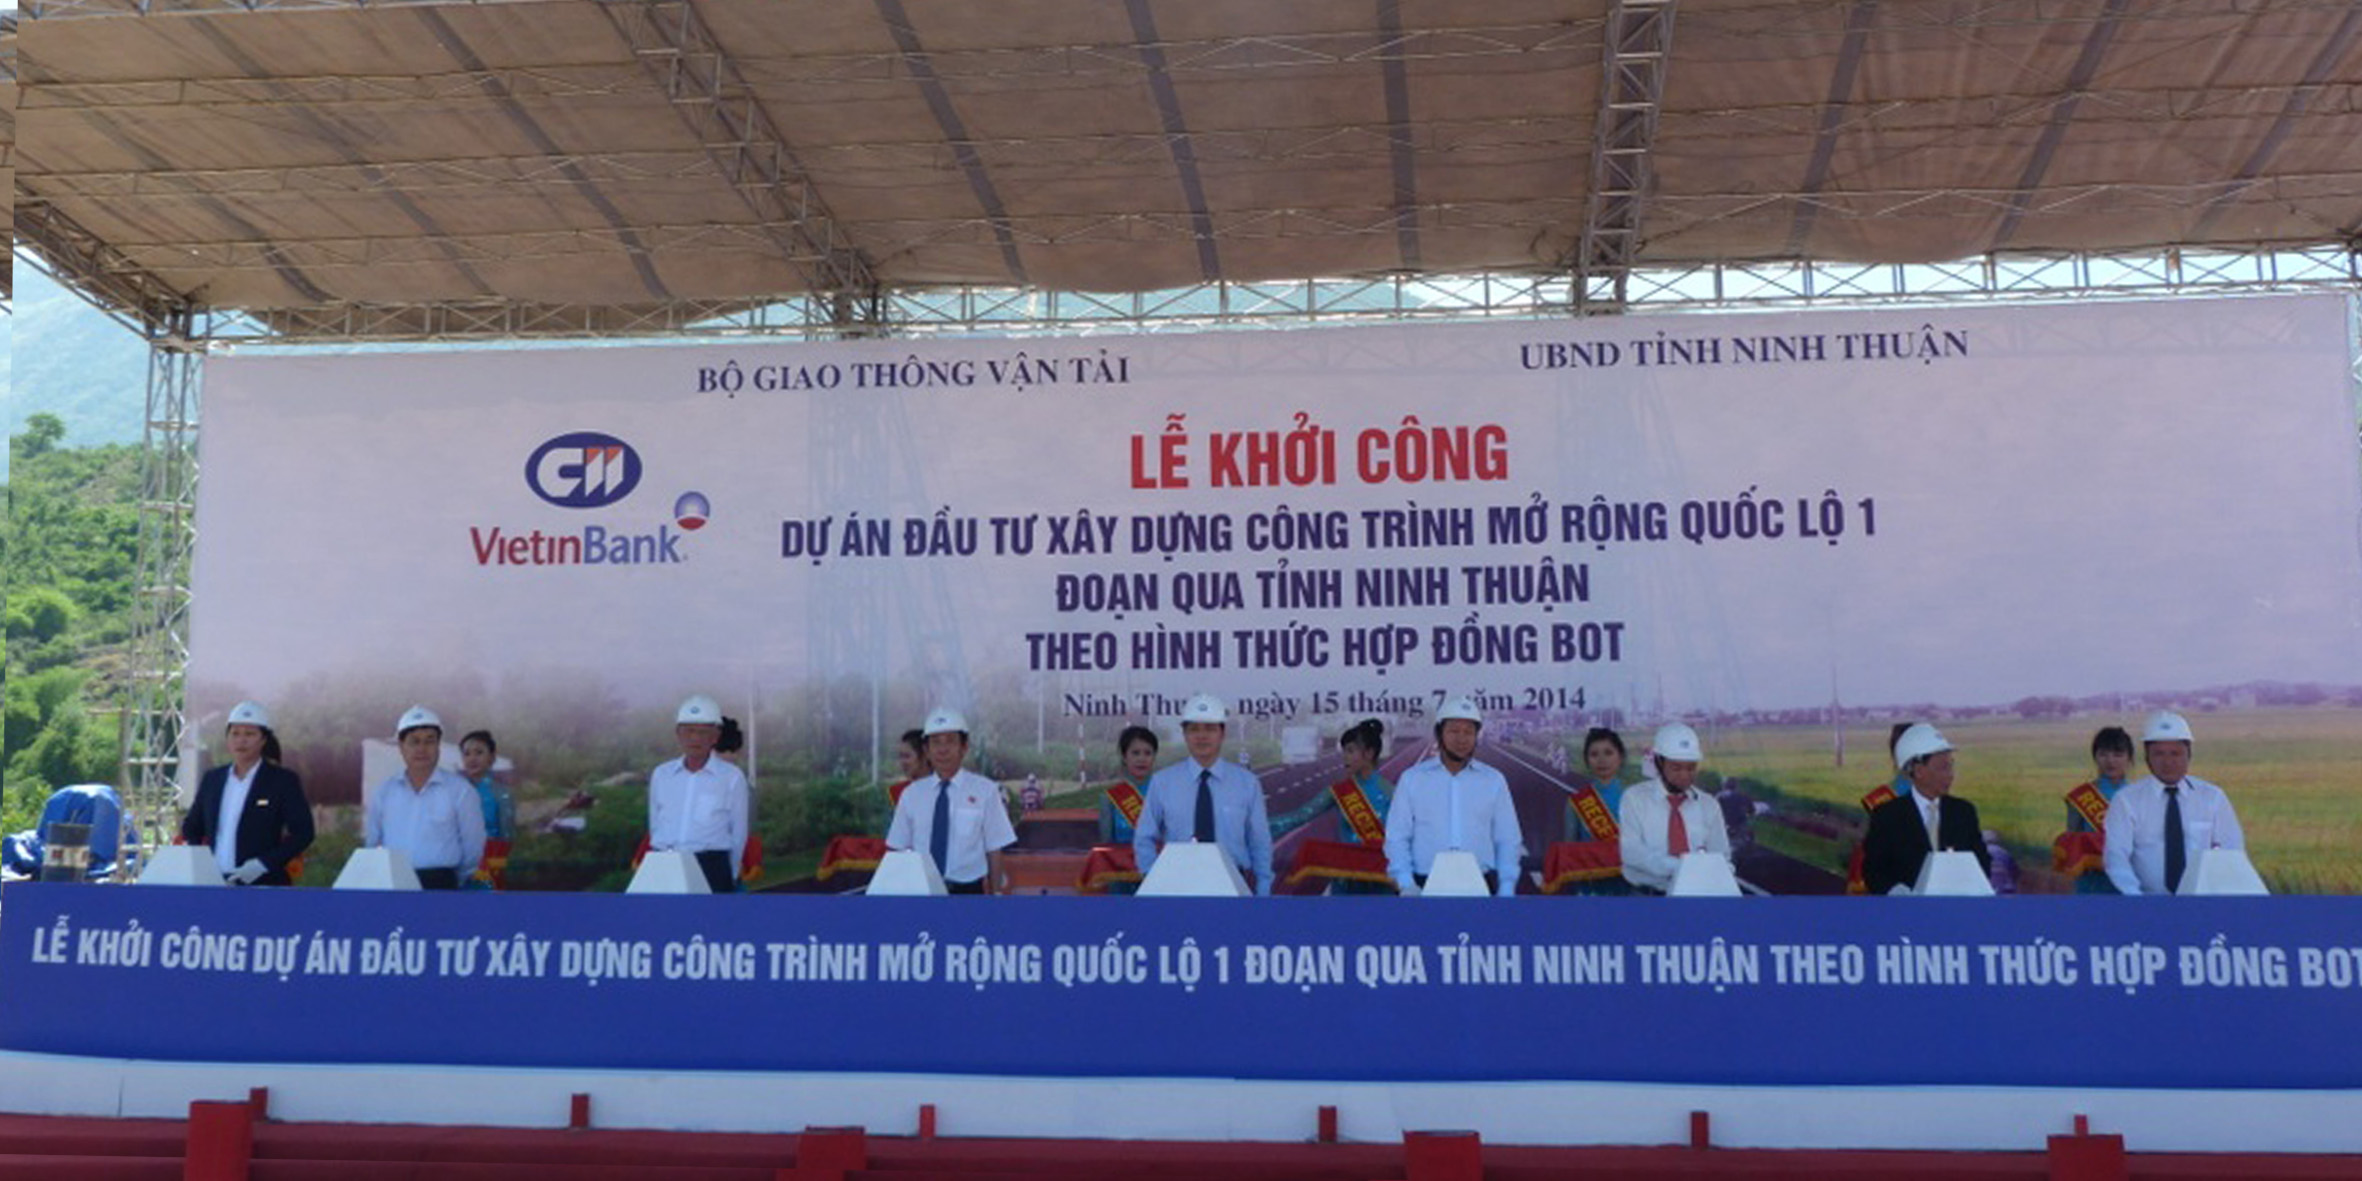 1A National Road in Phan Rang  - Ninh Thuan expanding project